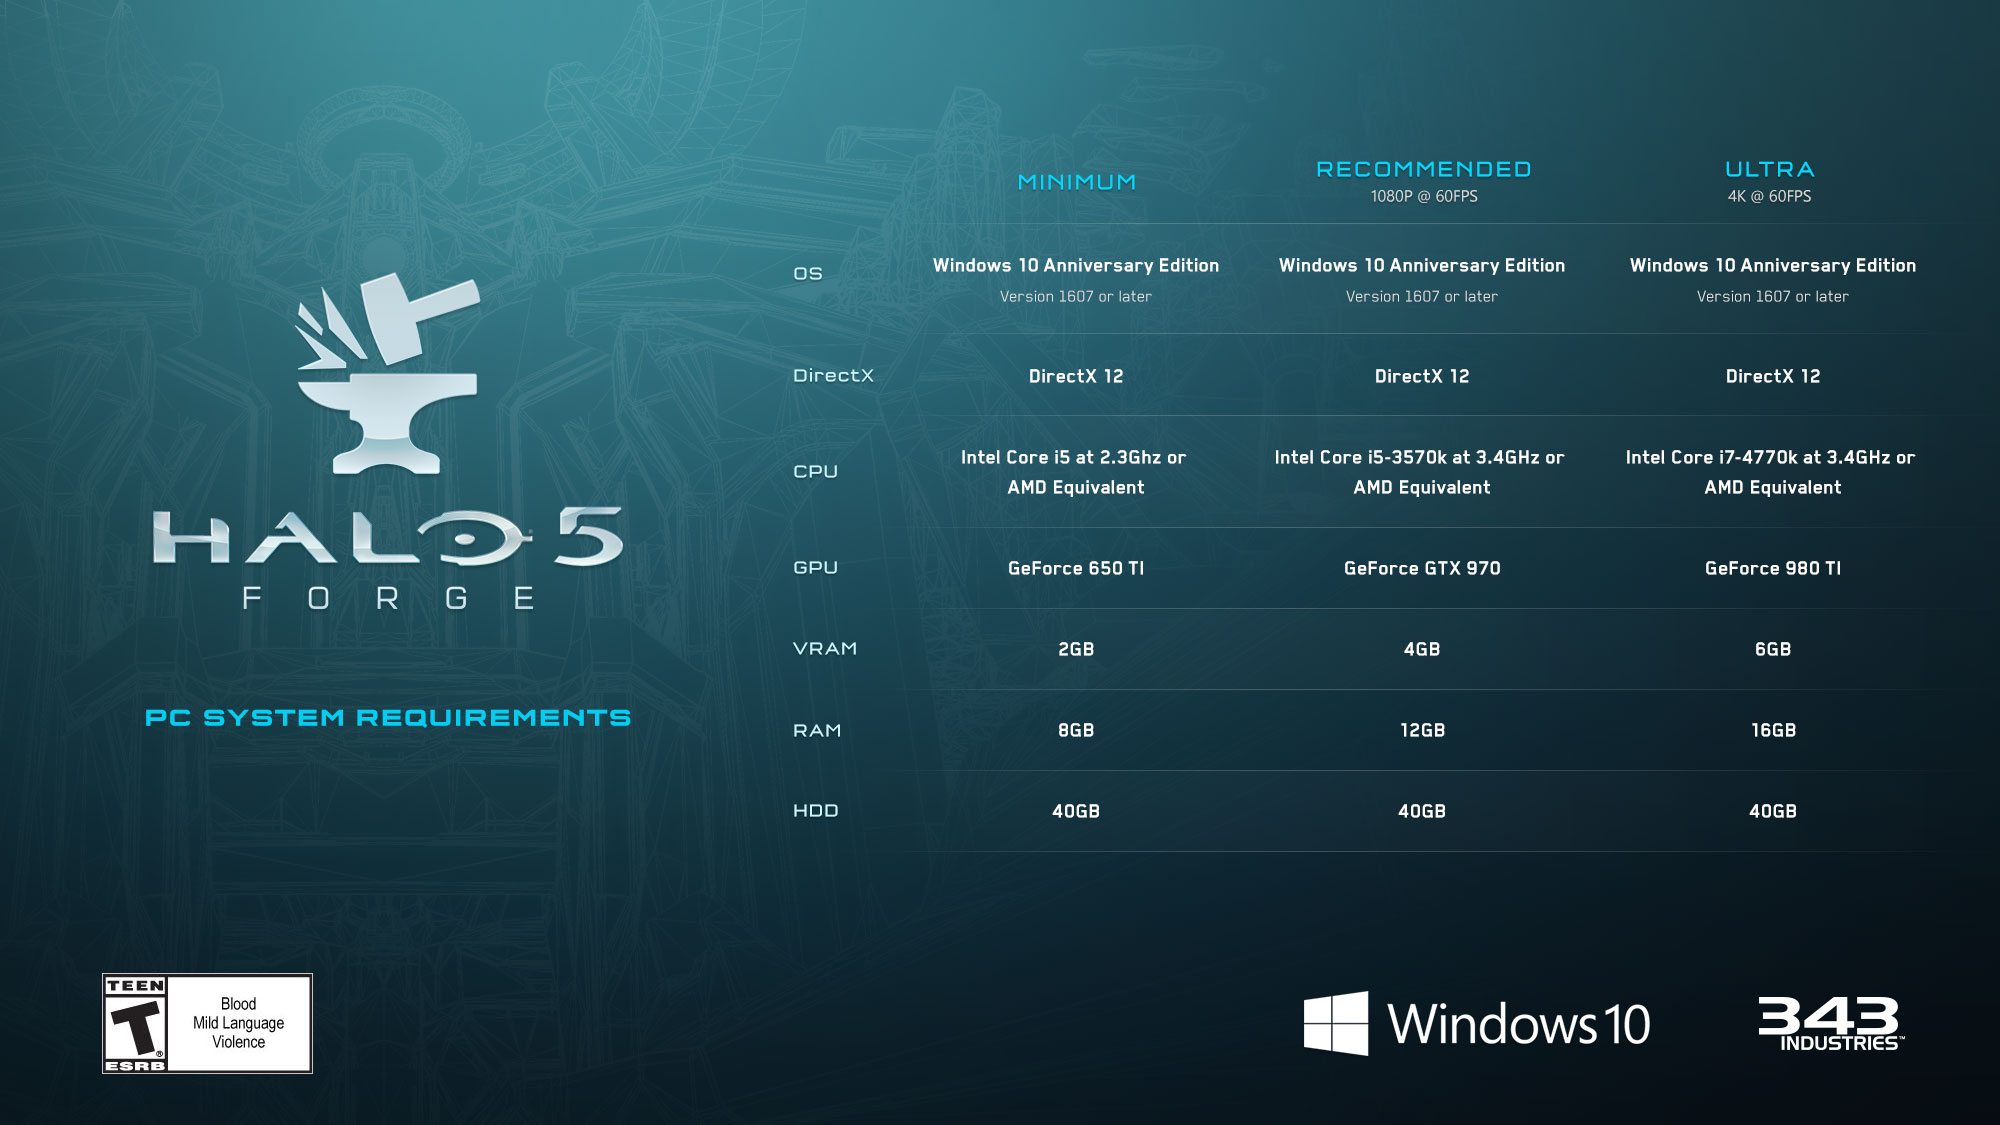 Halo 5 Ecco i requisiti per la Forgia